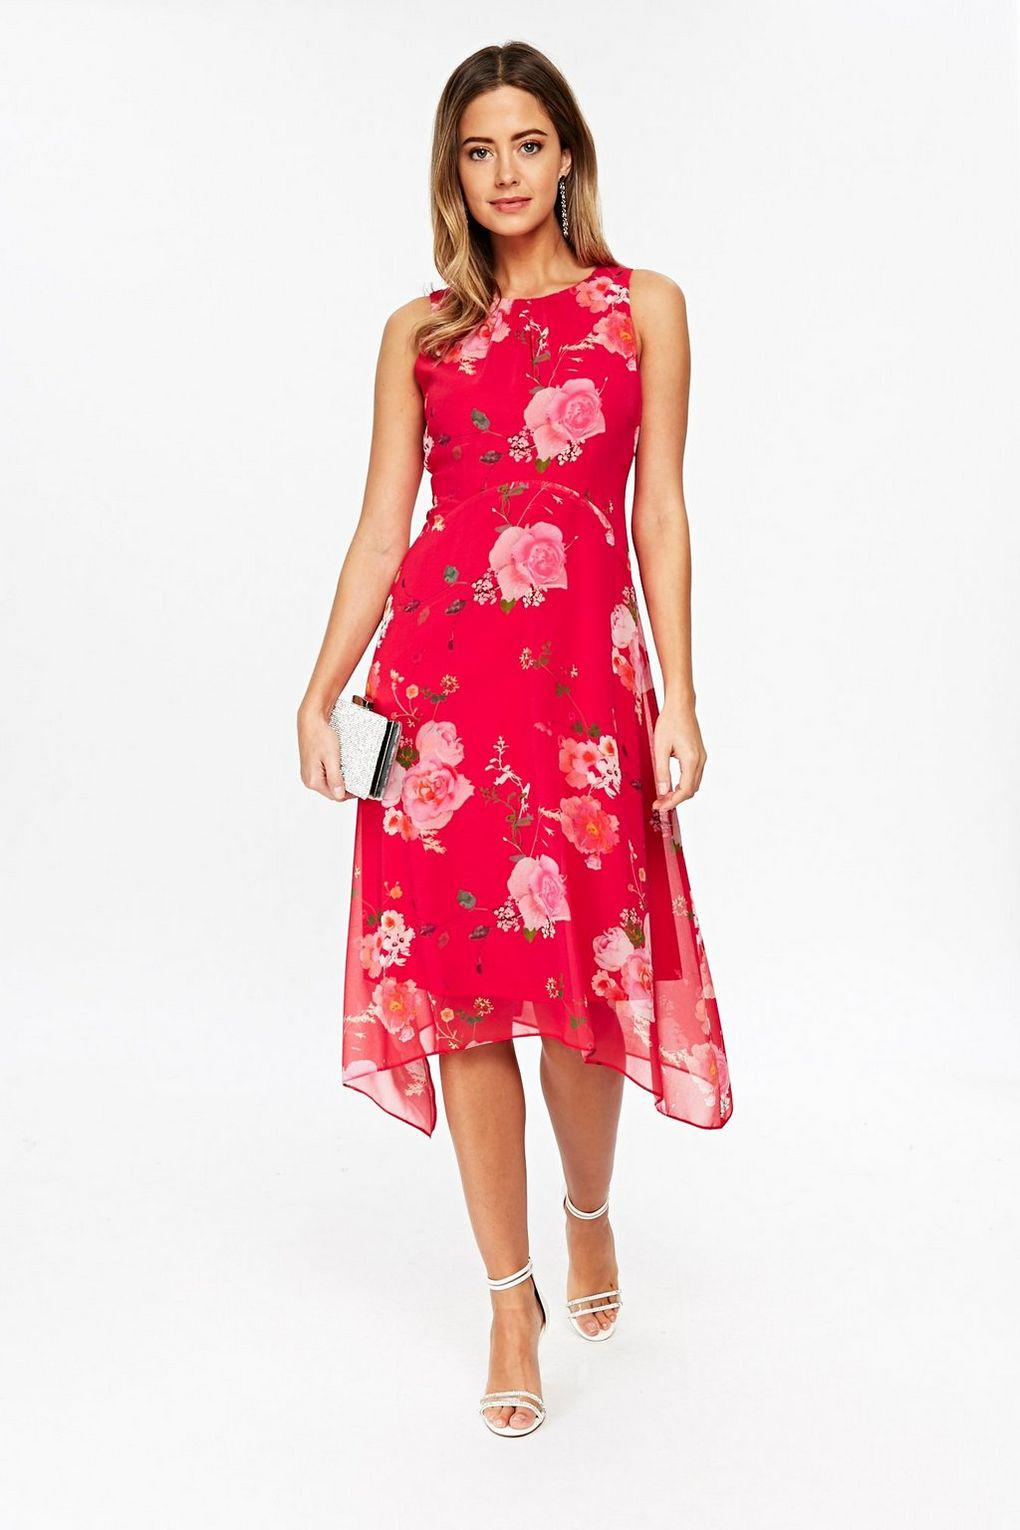 Wallis Petite Pink Floral Print Fit And Flare Dress in Pink - Lyst dad893193